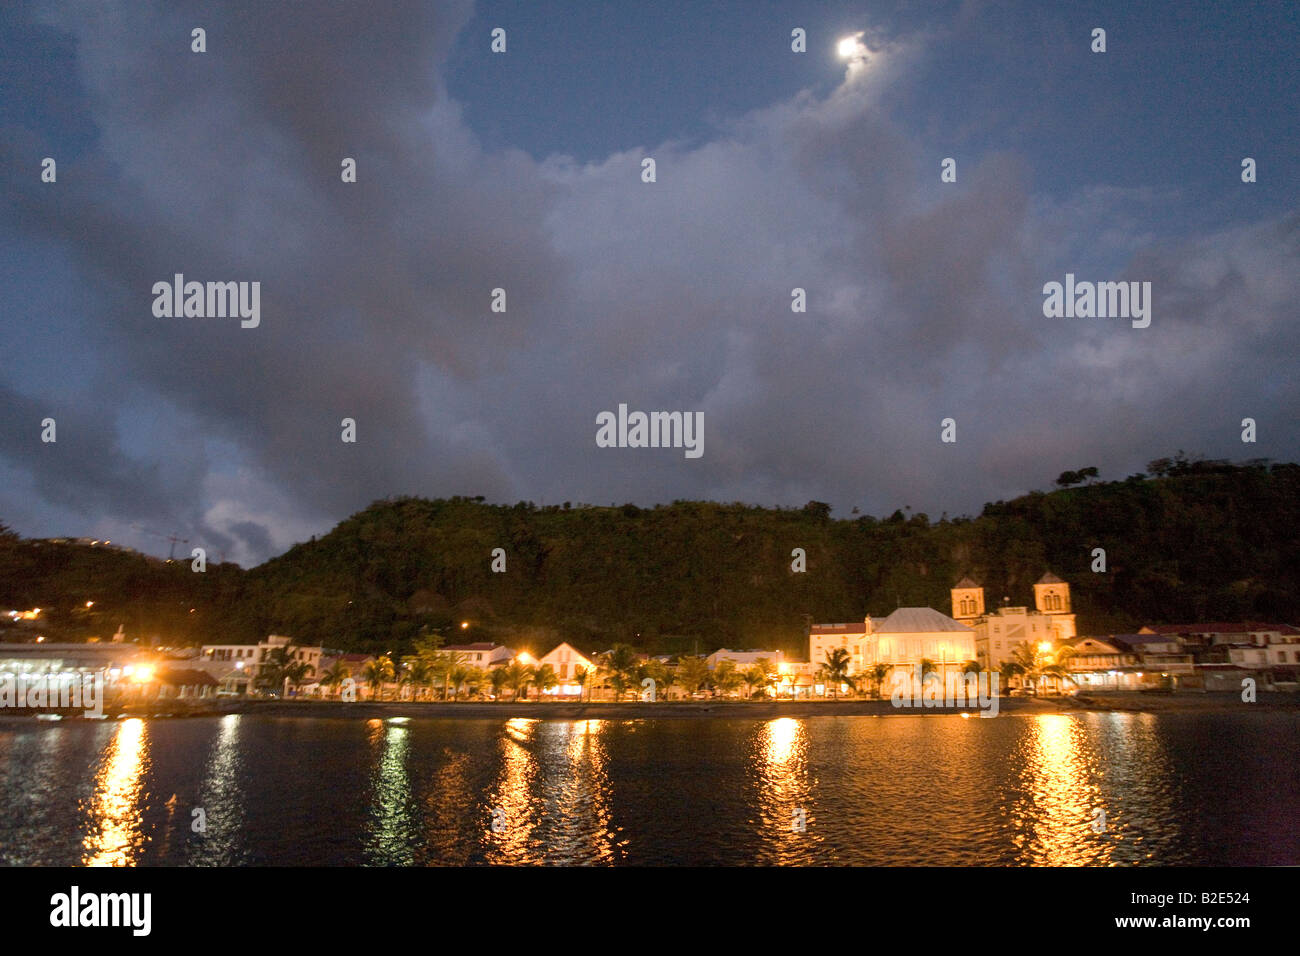 St Pierre Martinique West Indies at night under a full moon. Stock Photo